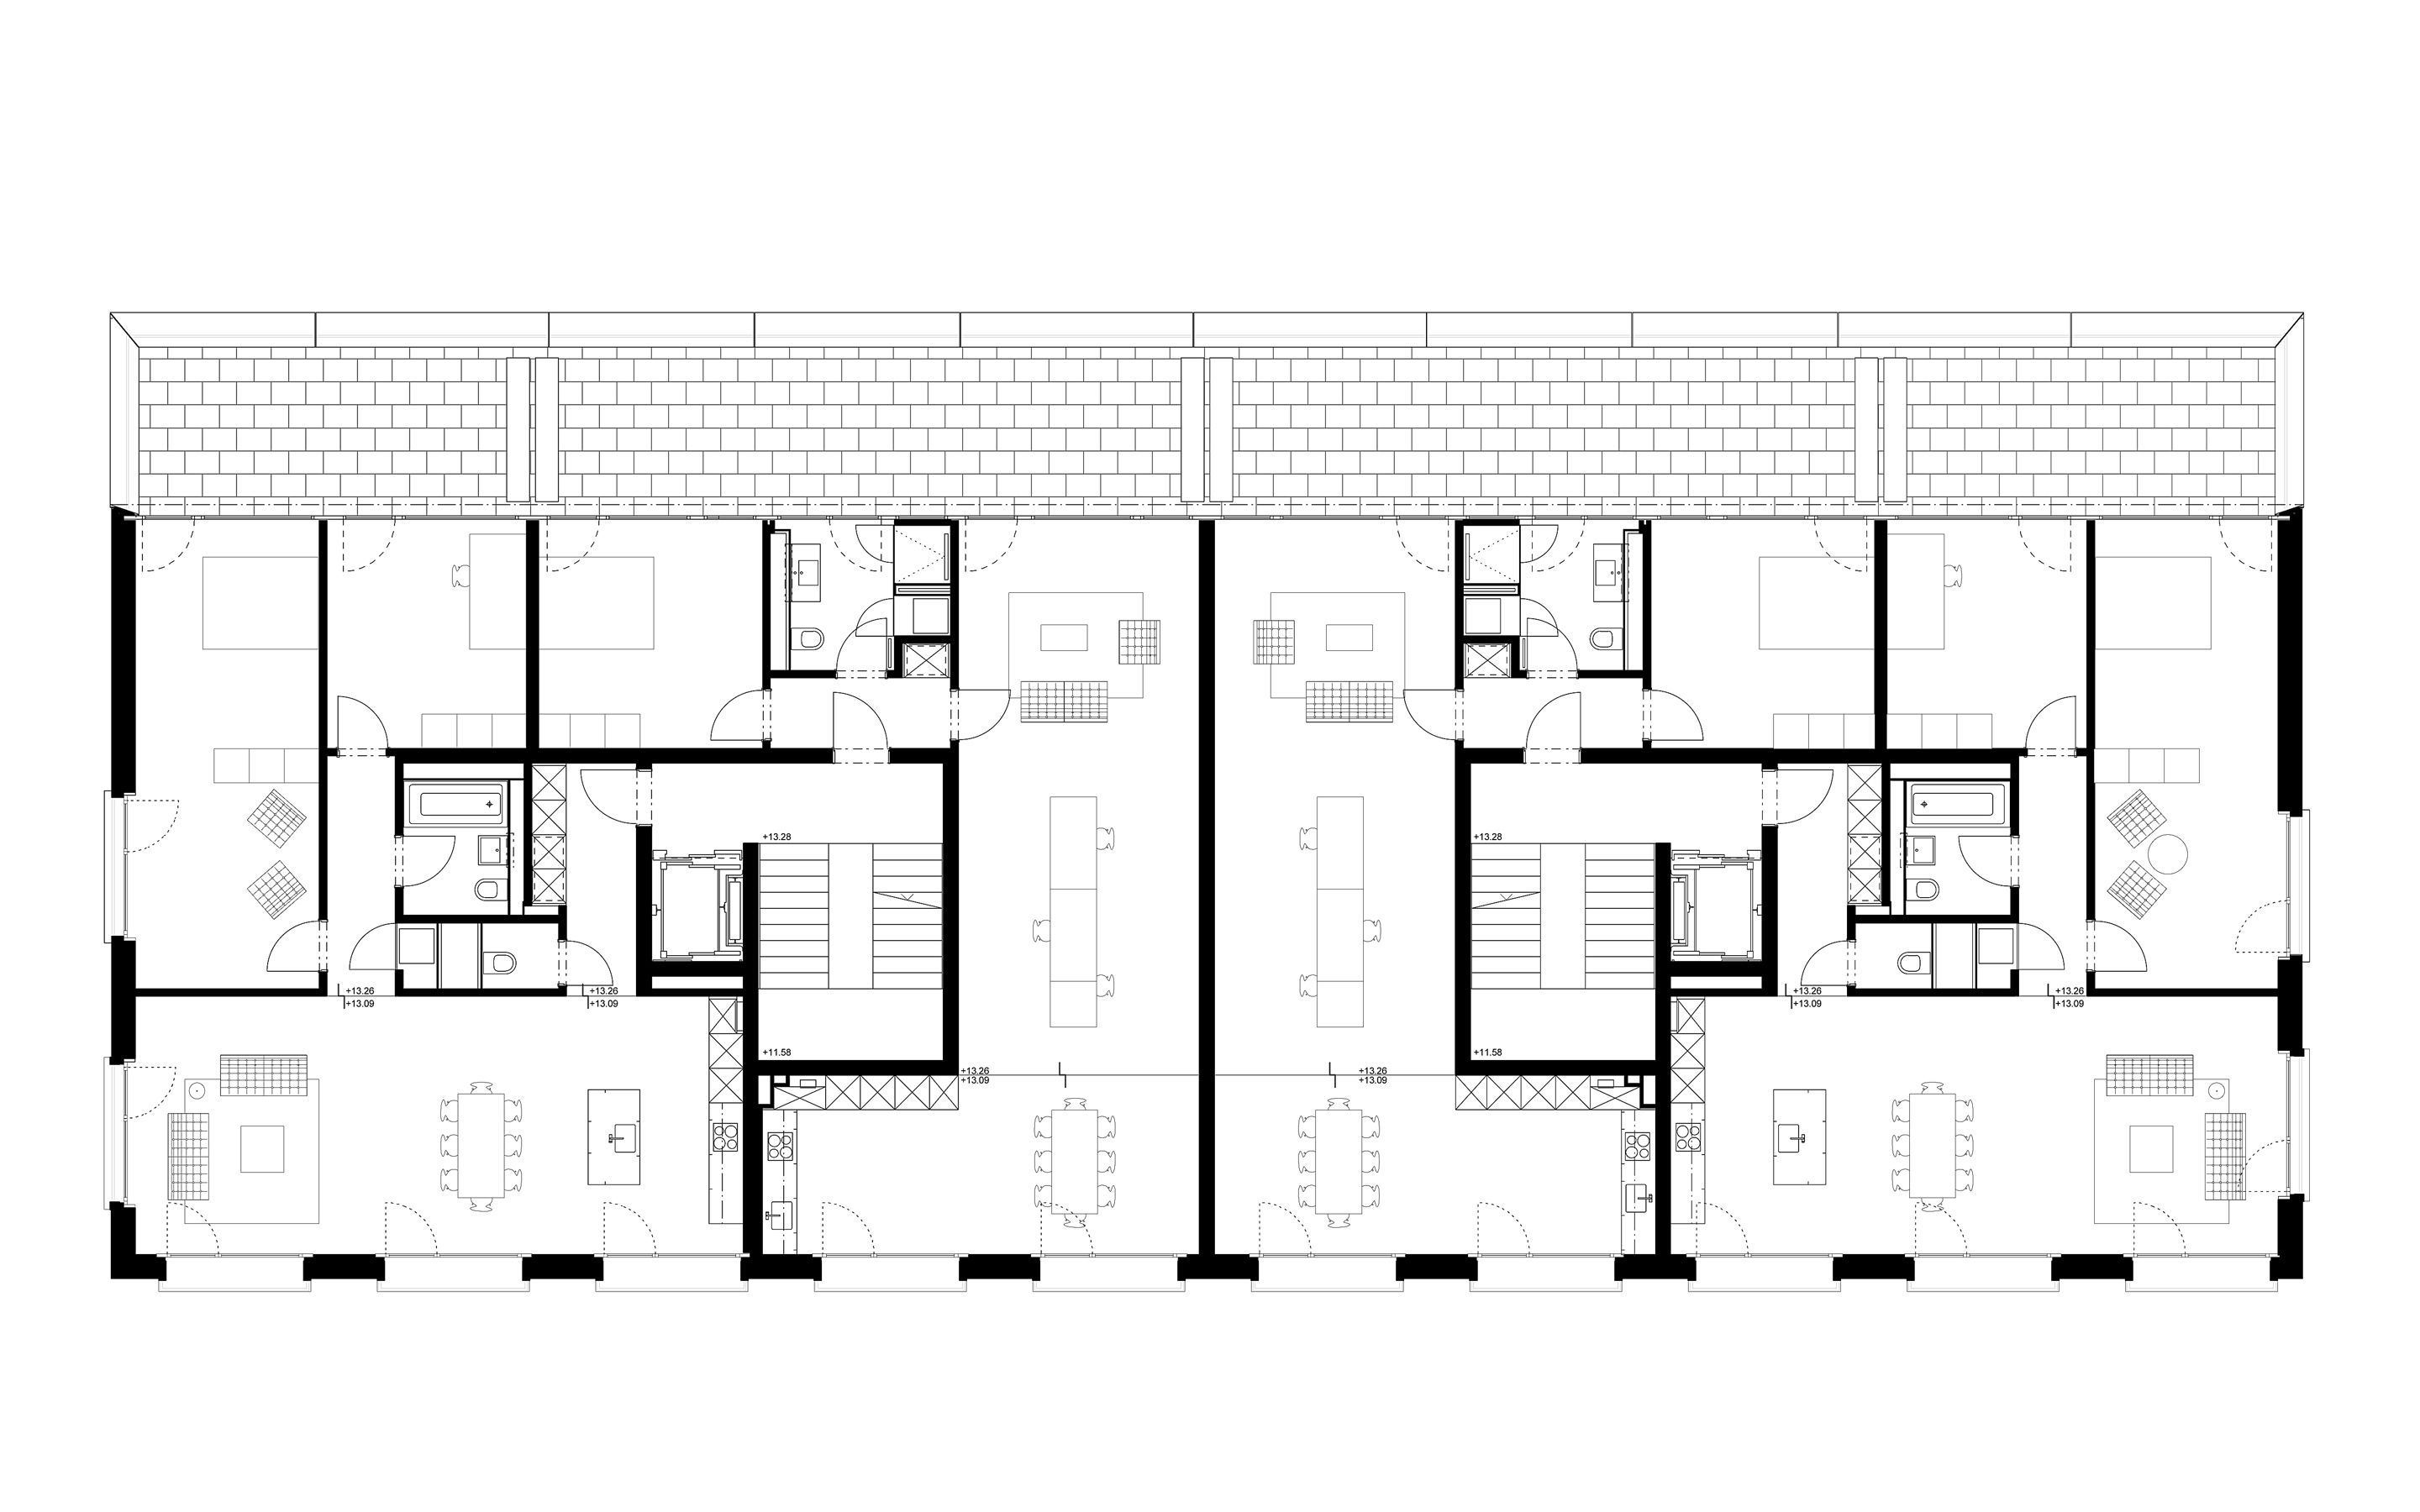 15 best dwelling images on pinterest floor plans architectural 15 best dwelling images on pinterest floor plans architectural drawings and architecture plan